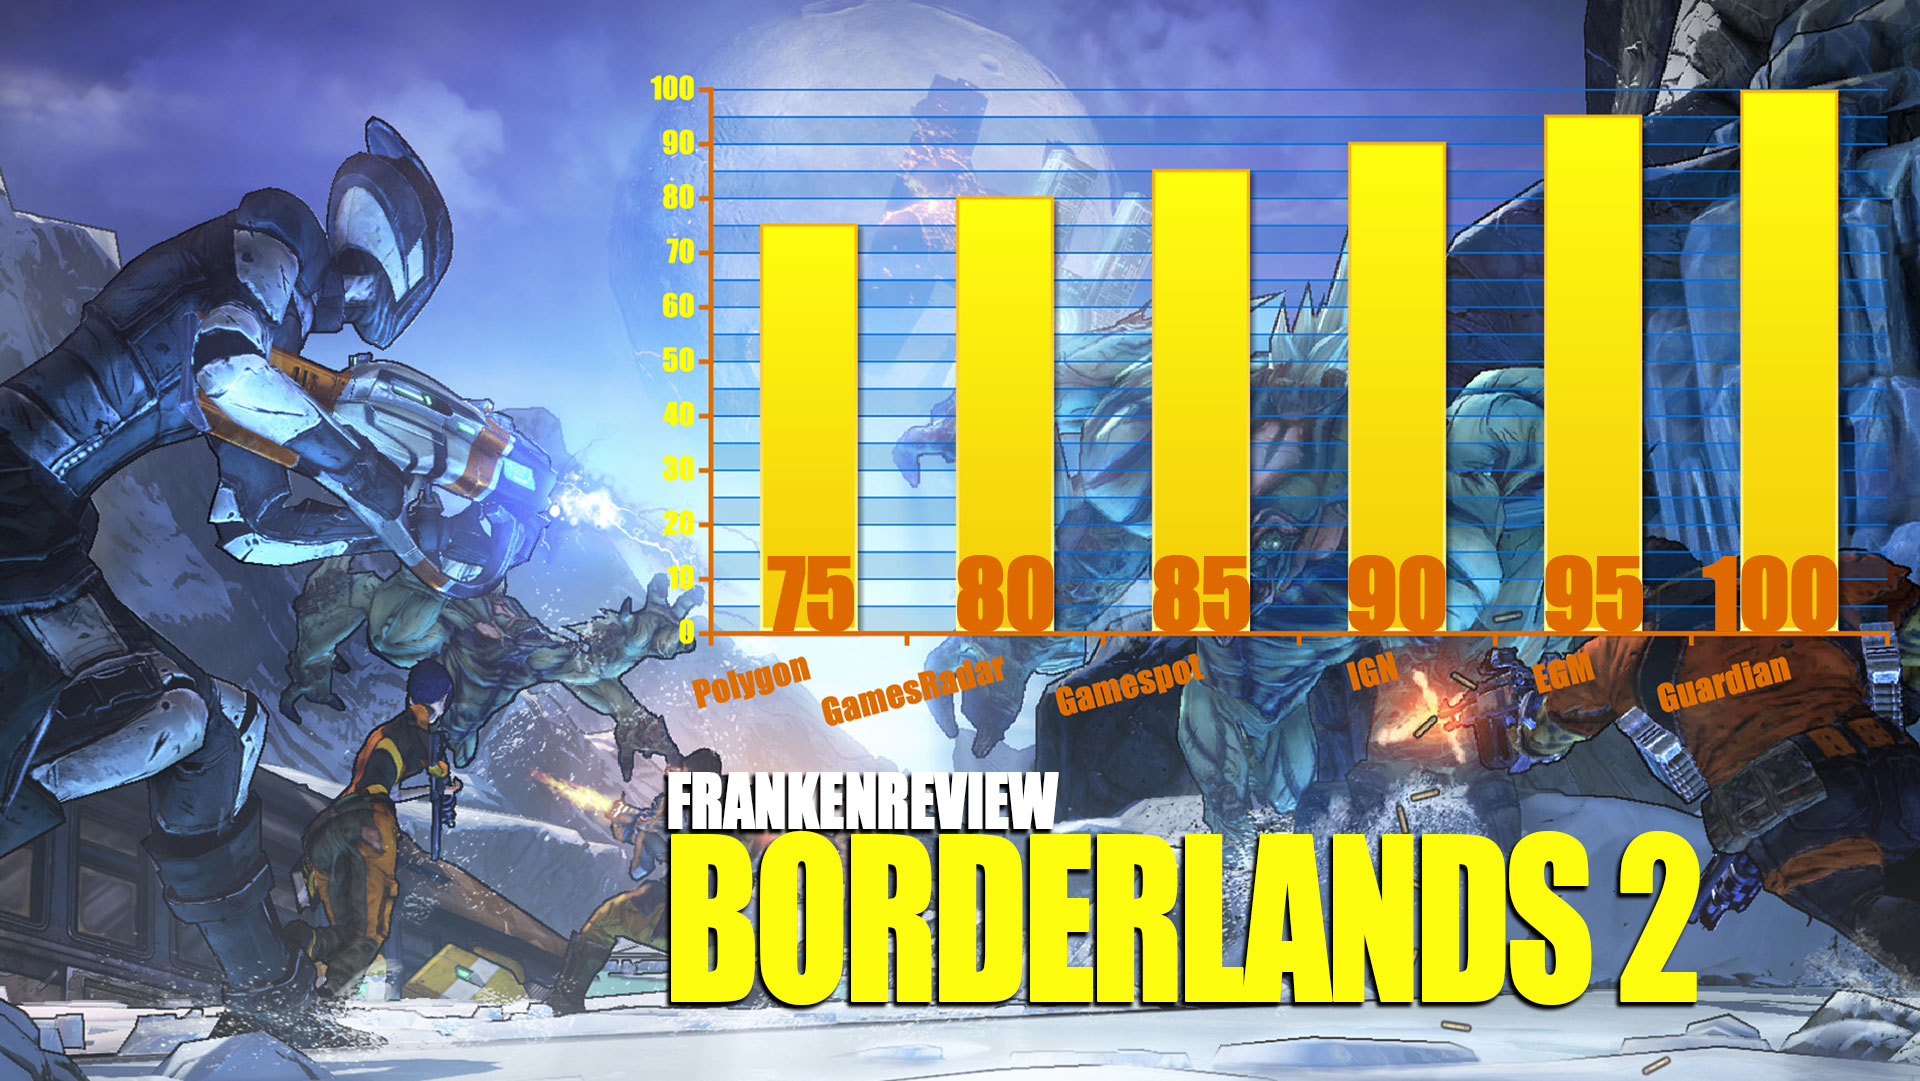 Eight Game Critics Band Together To Review Borderlands 2